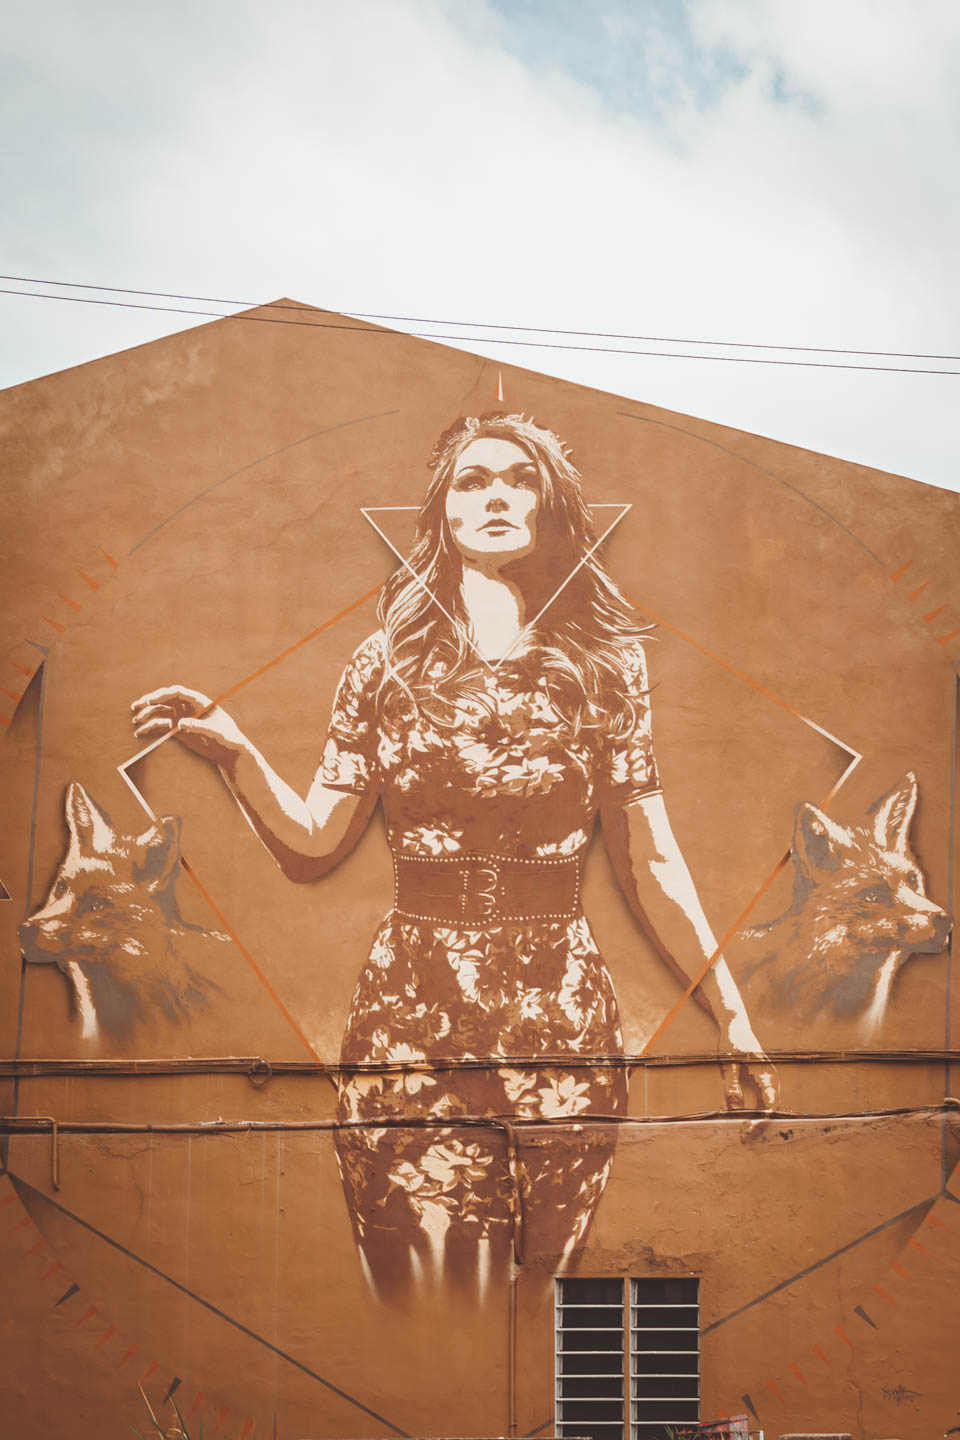 Fox Lady mural by Tank Petrol, Urban Xchange Crossing Over Hin Bus Depot